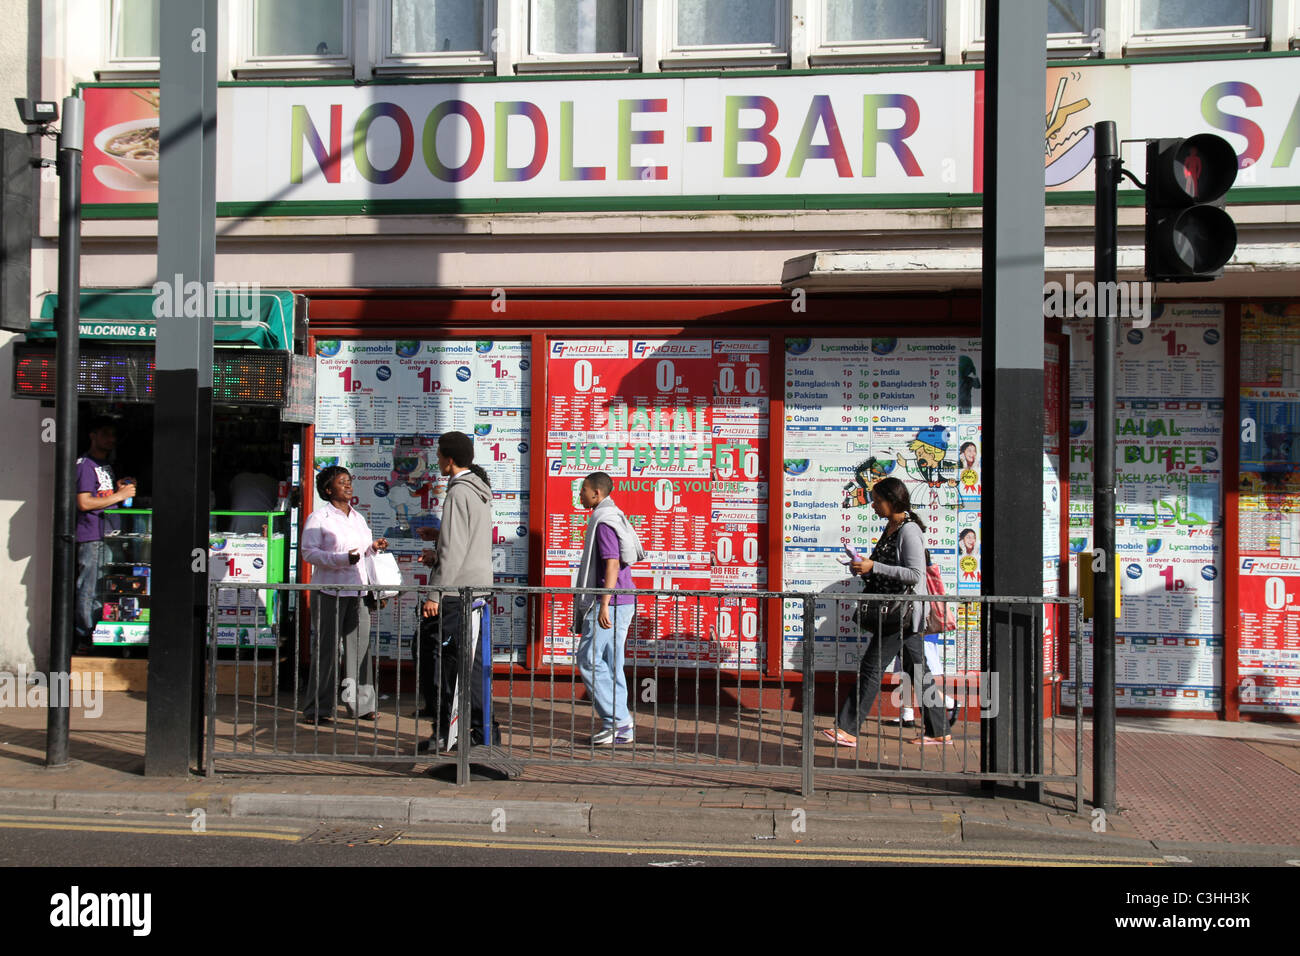 NOODLE BAR AND CALL CENTRE SHOP IN CROYDON,LONDON, UK - Stock Image